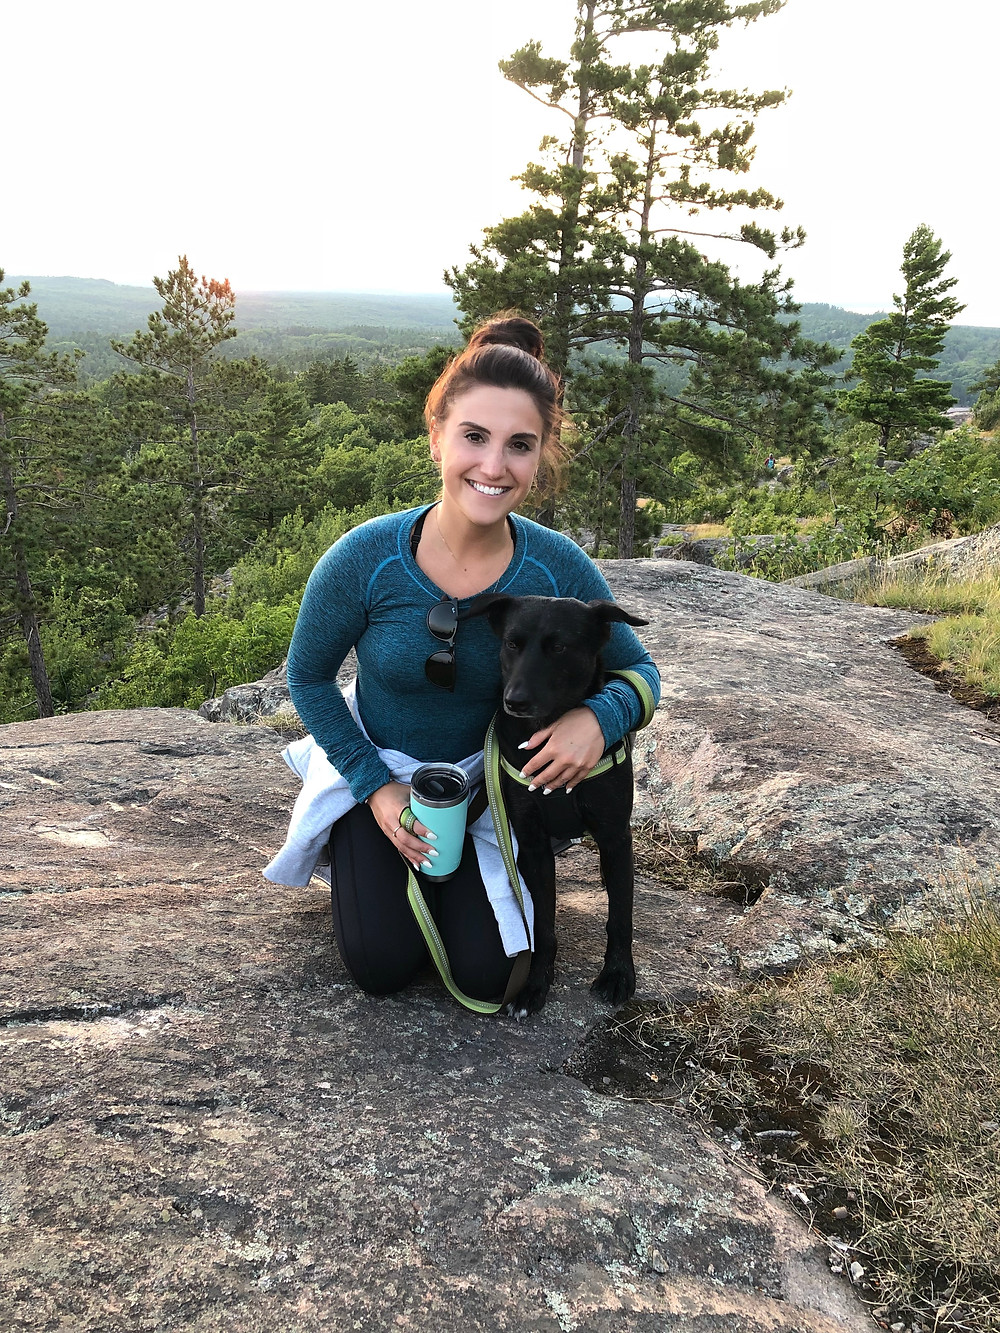 Me with my cute little rescue mutt, Roe at Sugarloaf Mountain in Marquette, MI